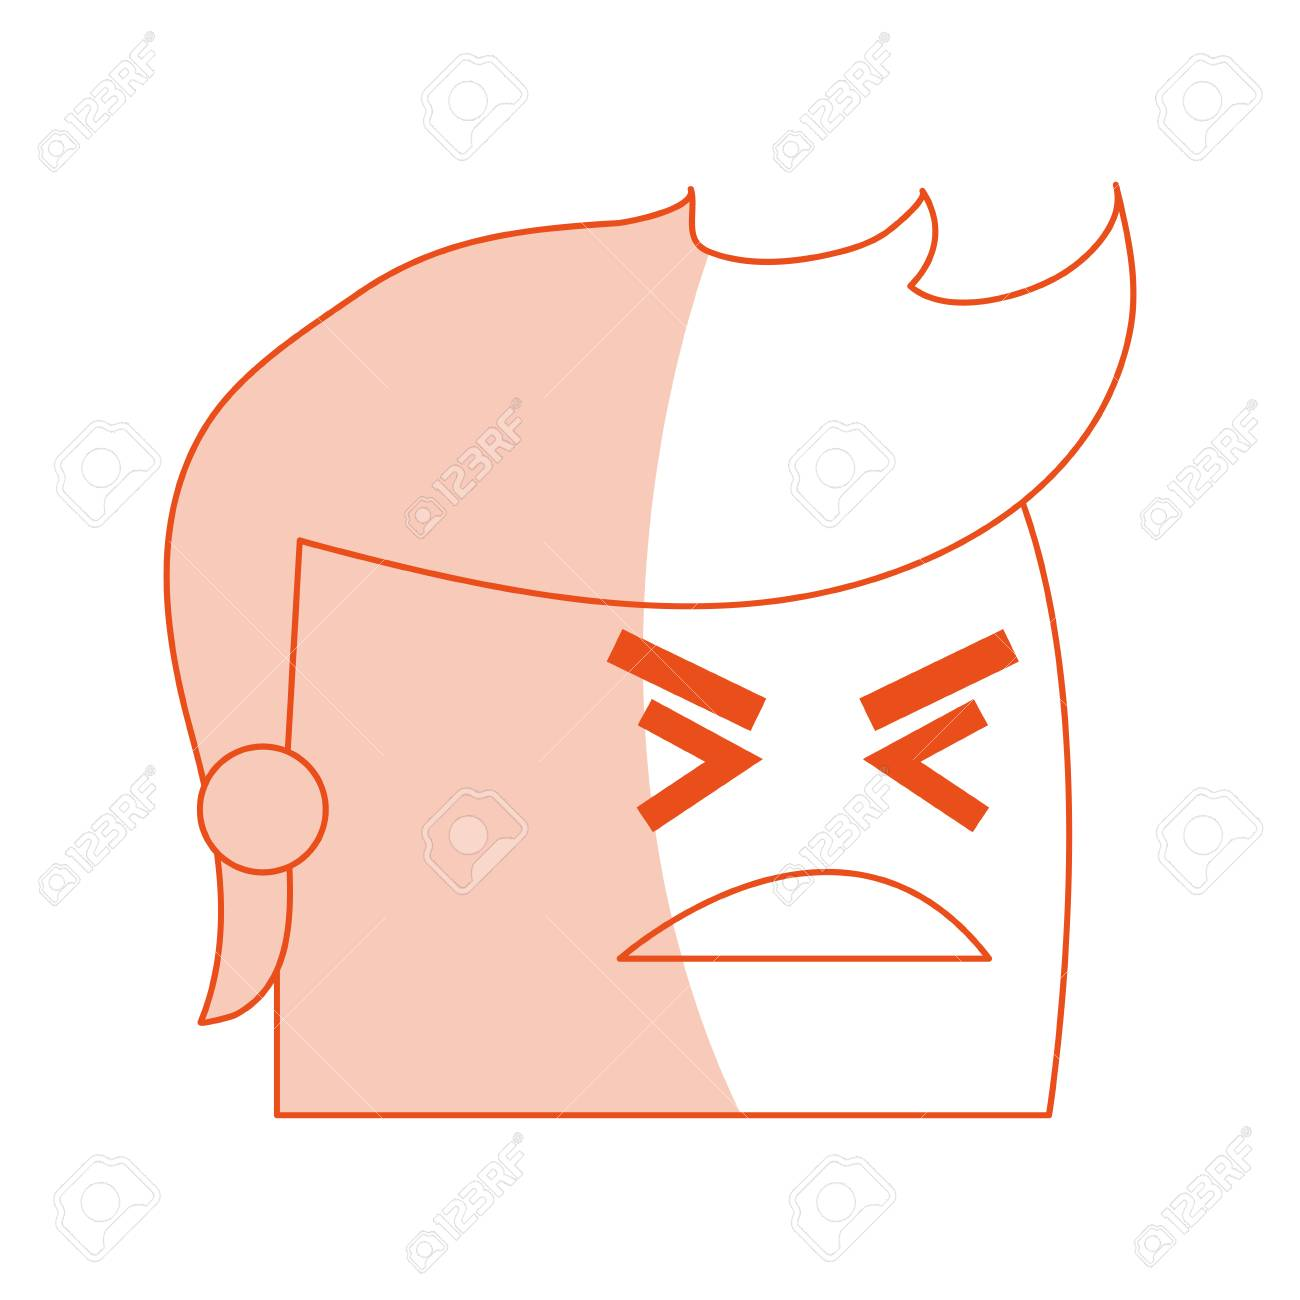 hight resolution of red silhouette image side view face cartoon man with angry expression vector illustration stock vector